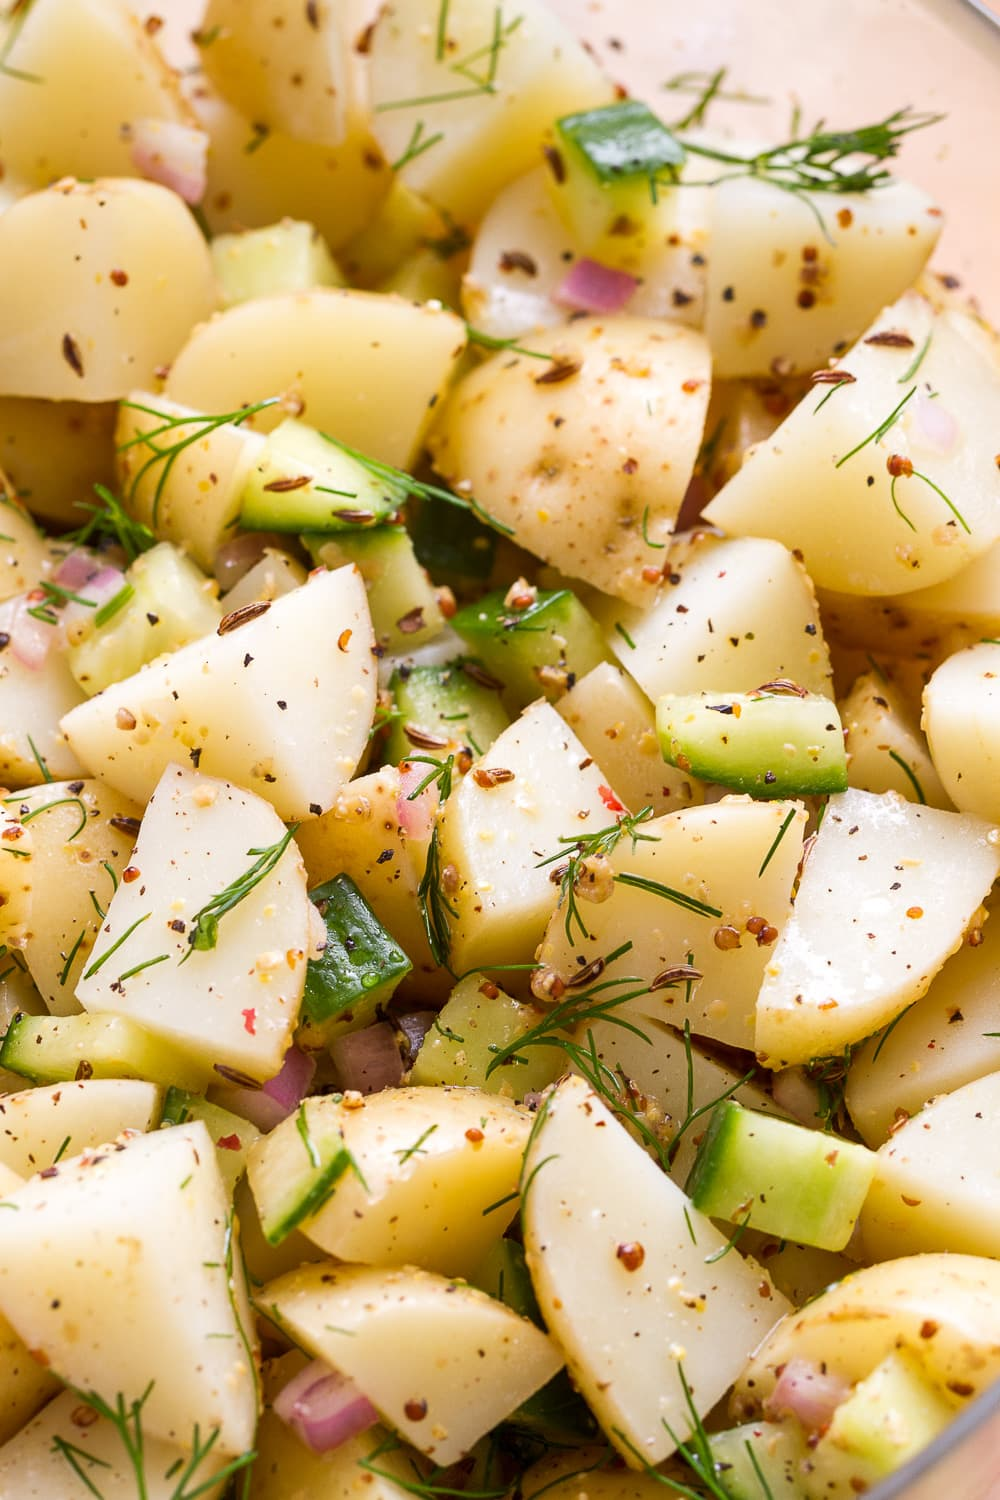 up close, side angle view of healthy german potato salad with dill.